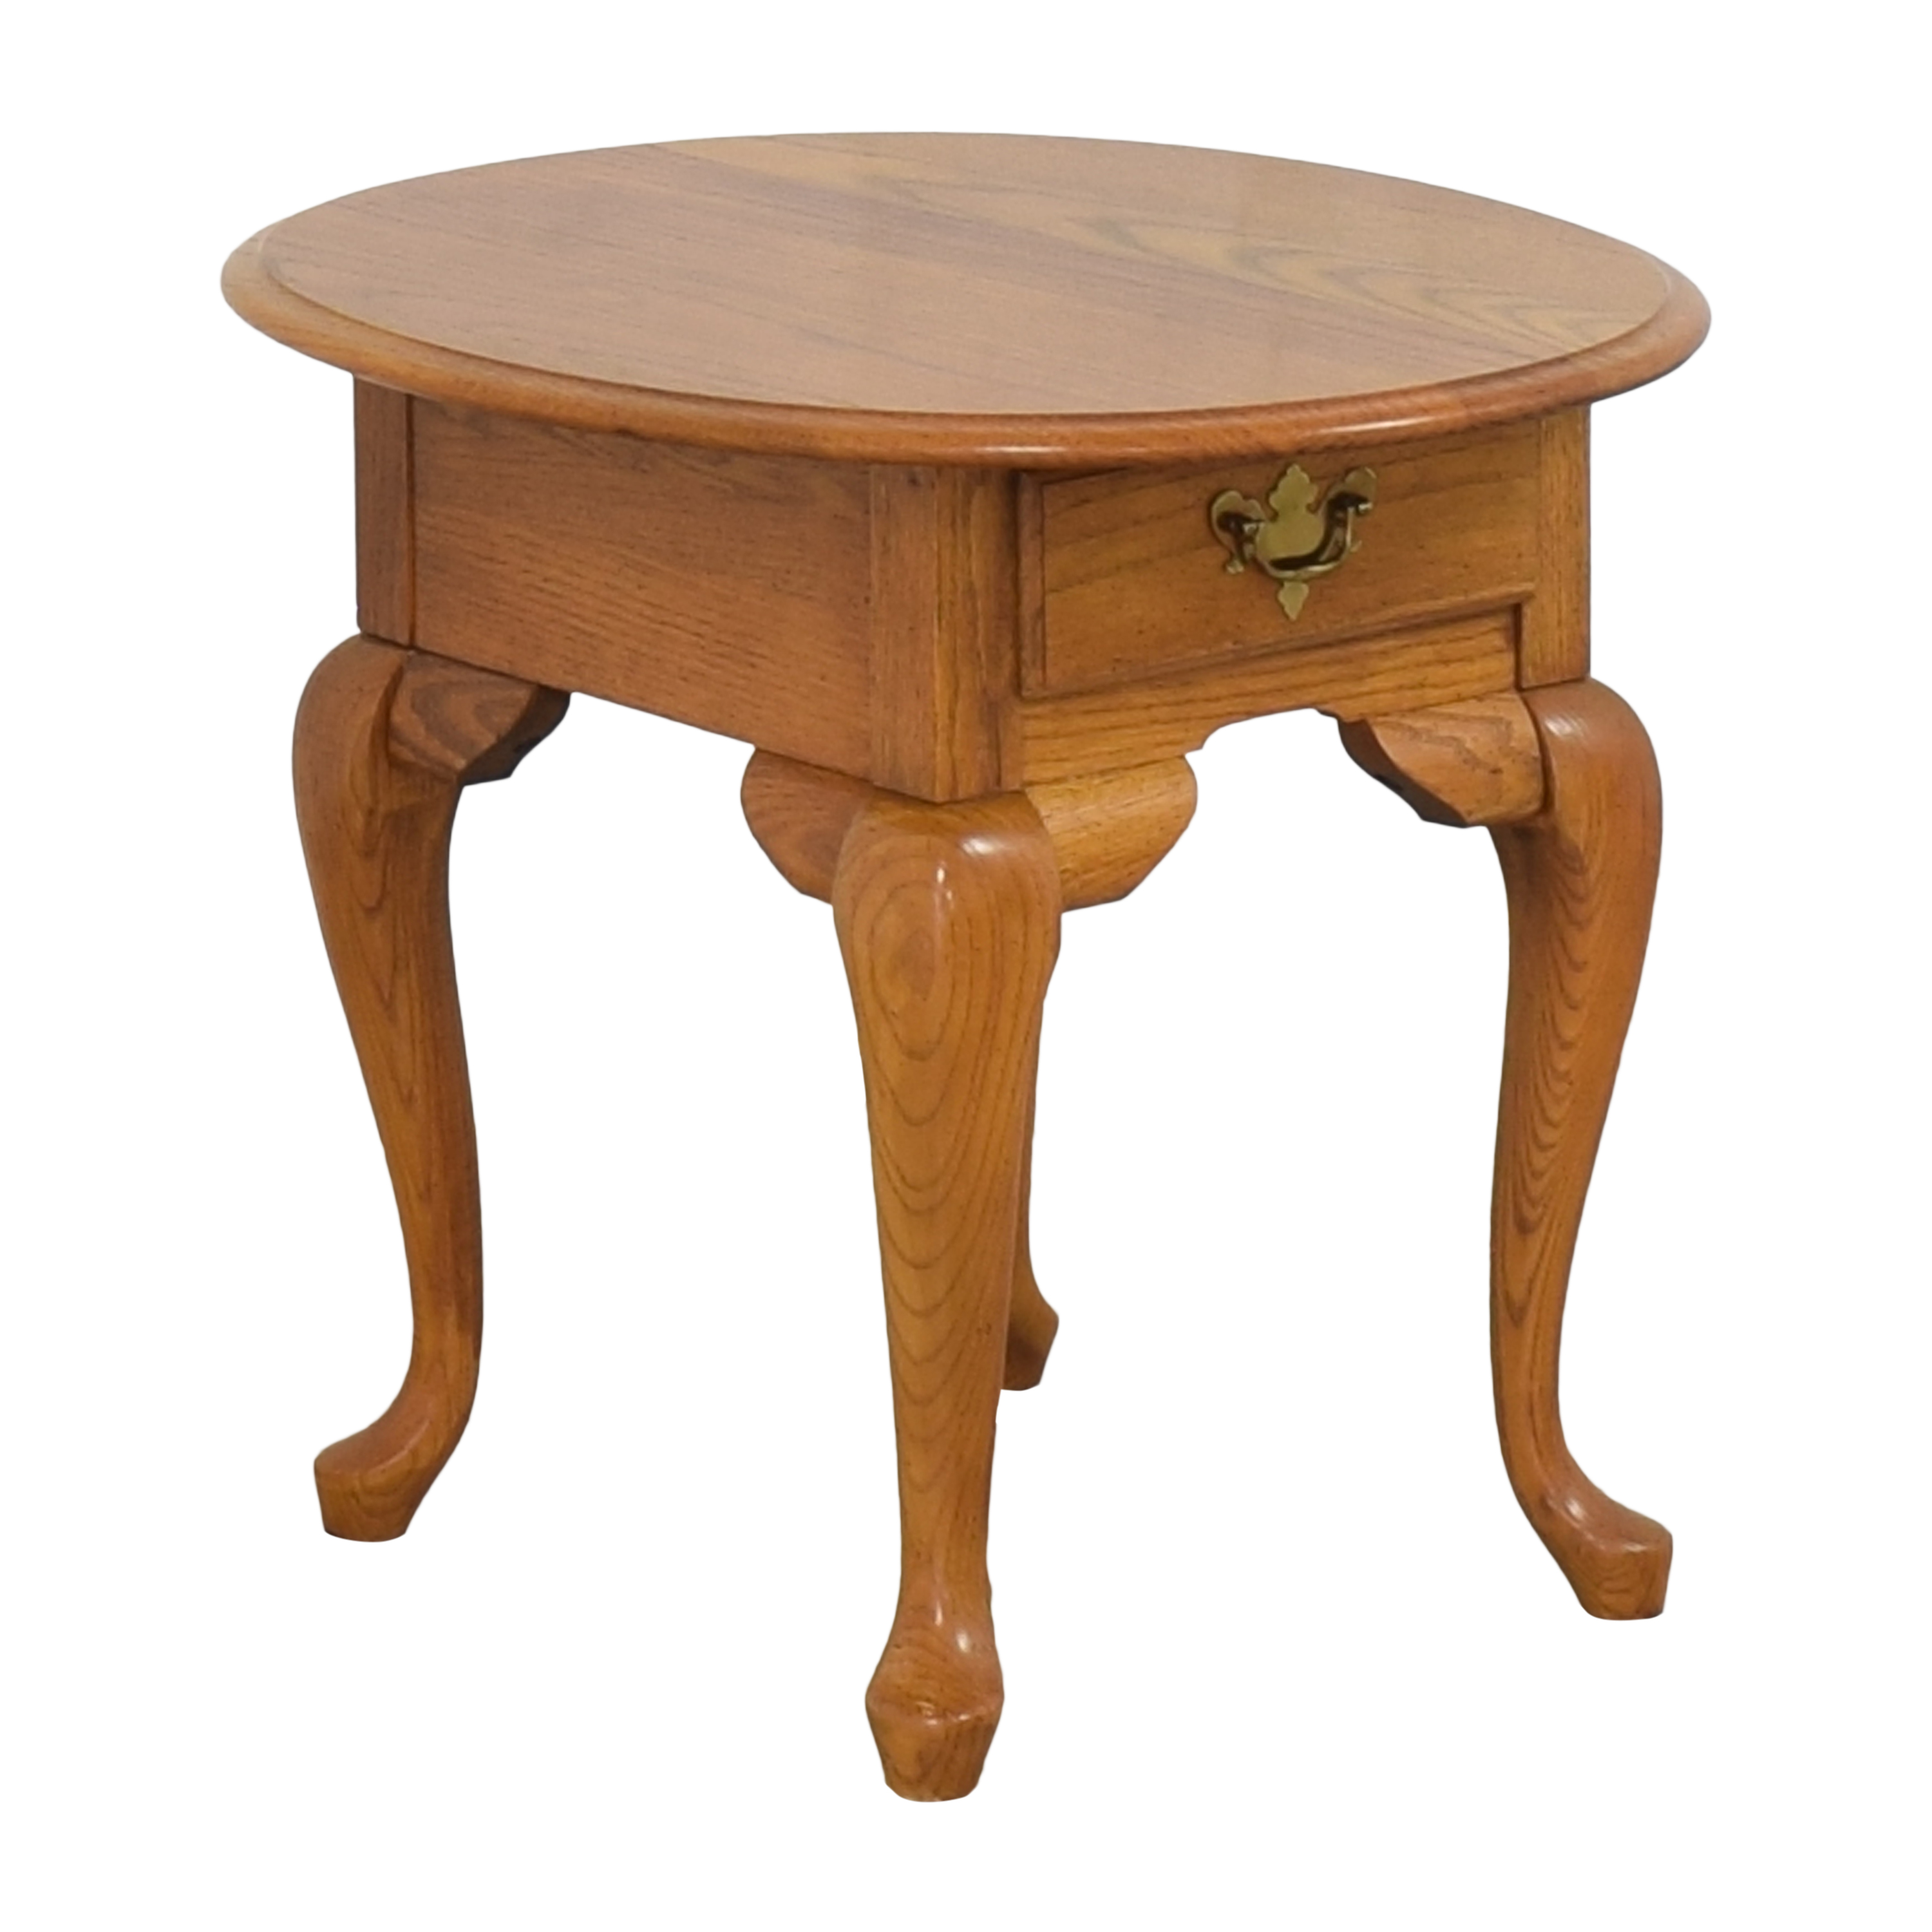 Broyhill Furniture Broyhill Single Drawer Round End Table brown